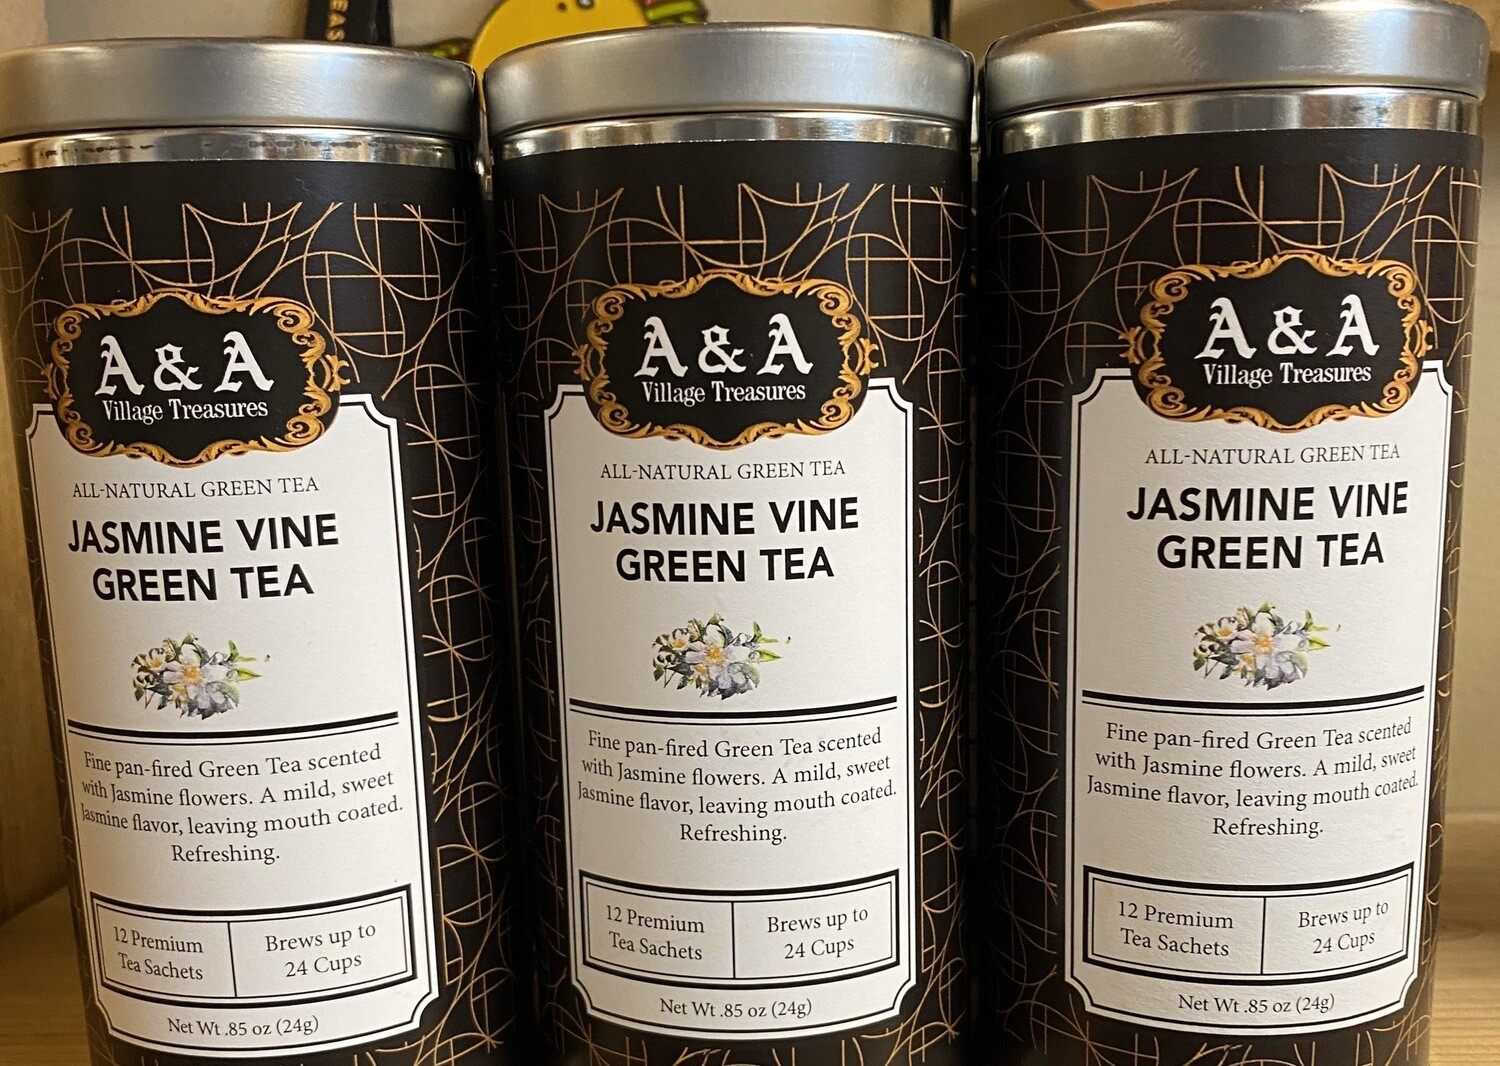 A&A Organic Tea Jasmine Vine Green 12 Sachets Making 2 To 3 Cups Each